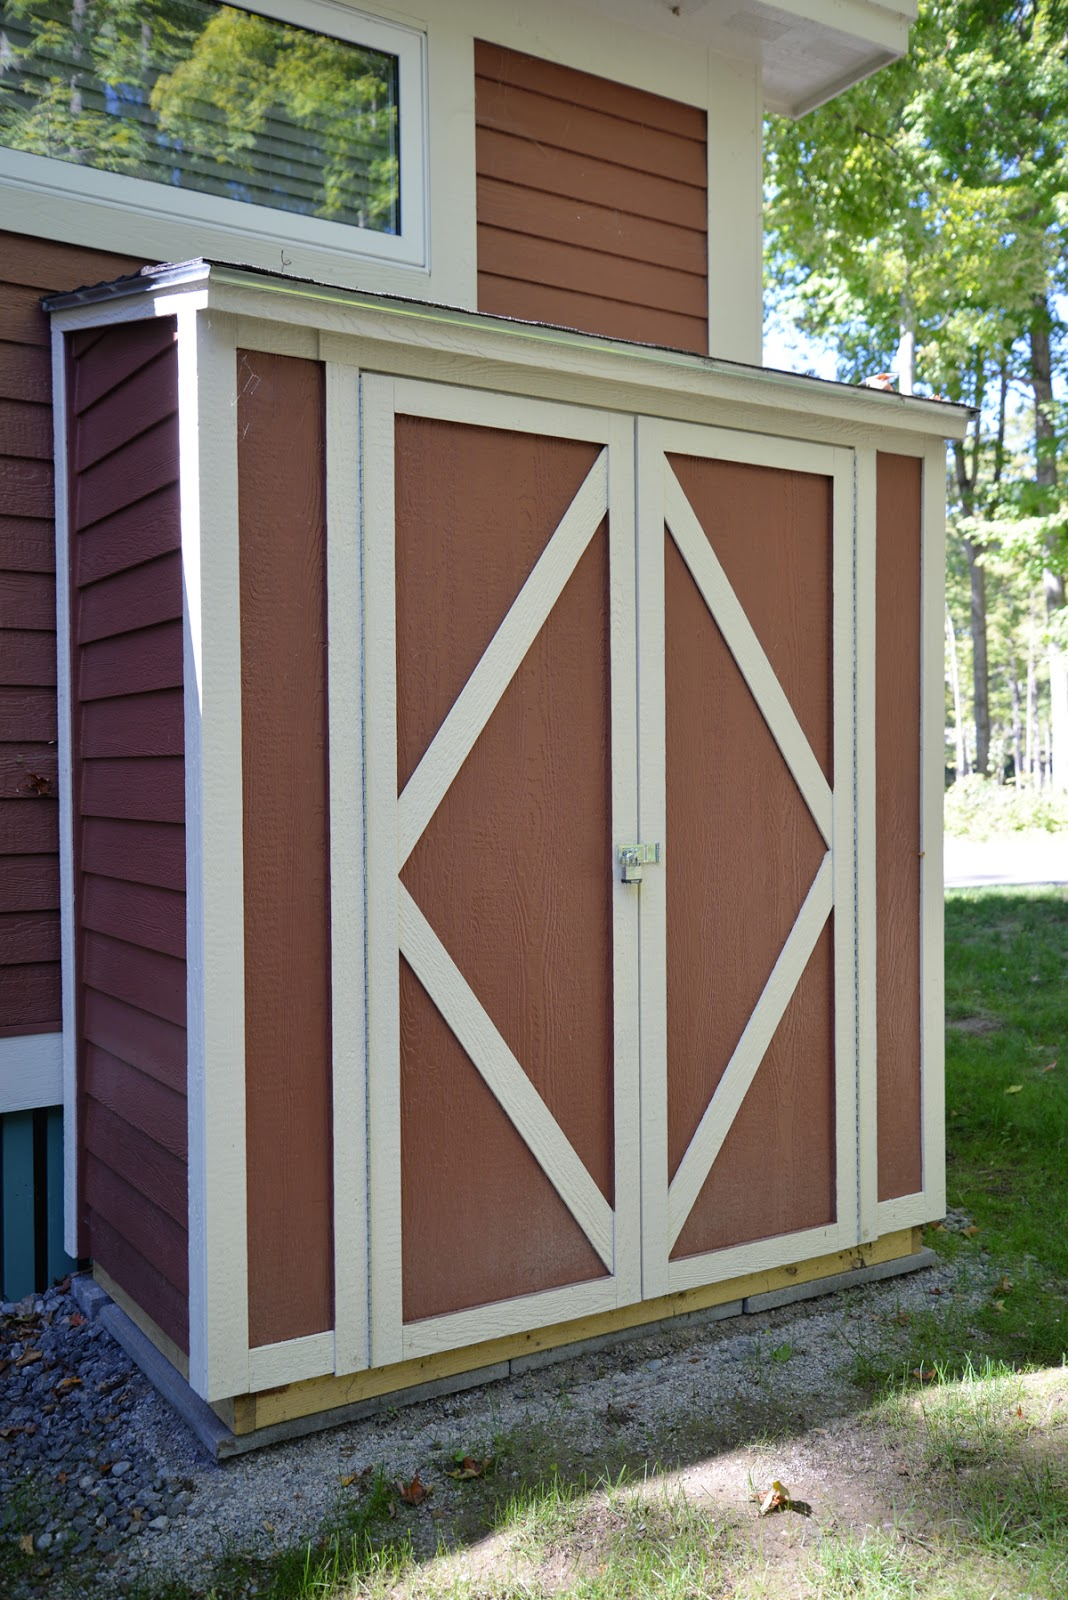 building a Home Depot storage shed assembly and instructions | Ramblingrenovators.ca